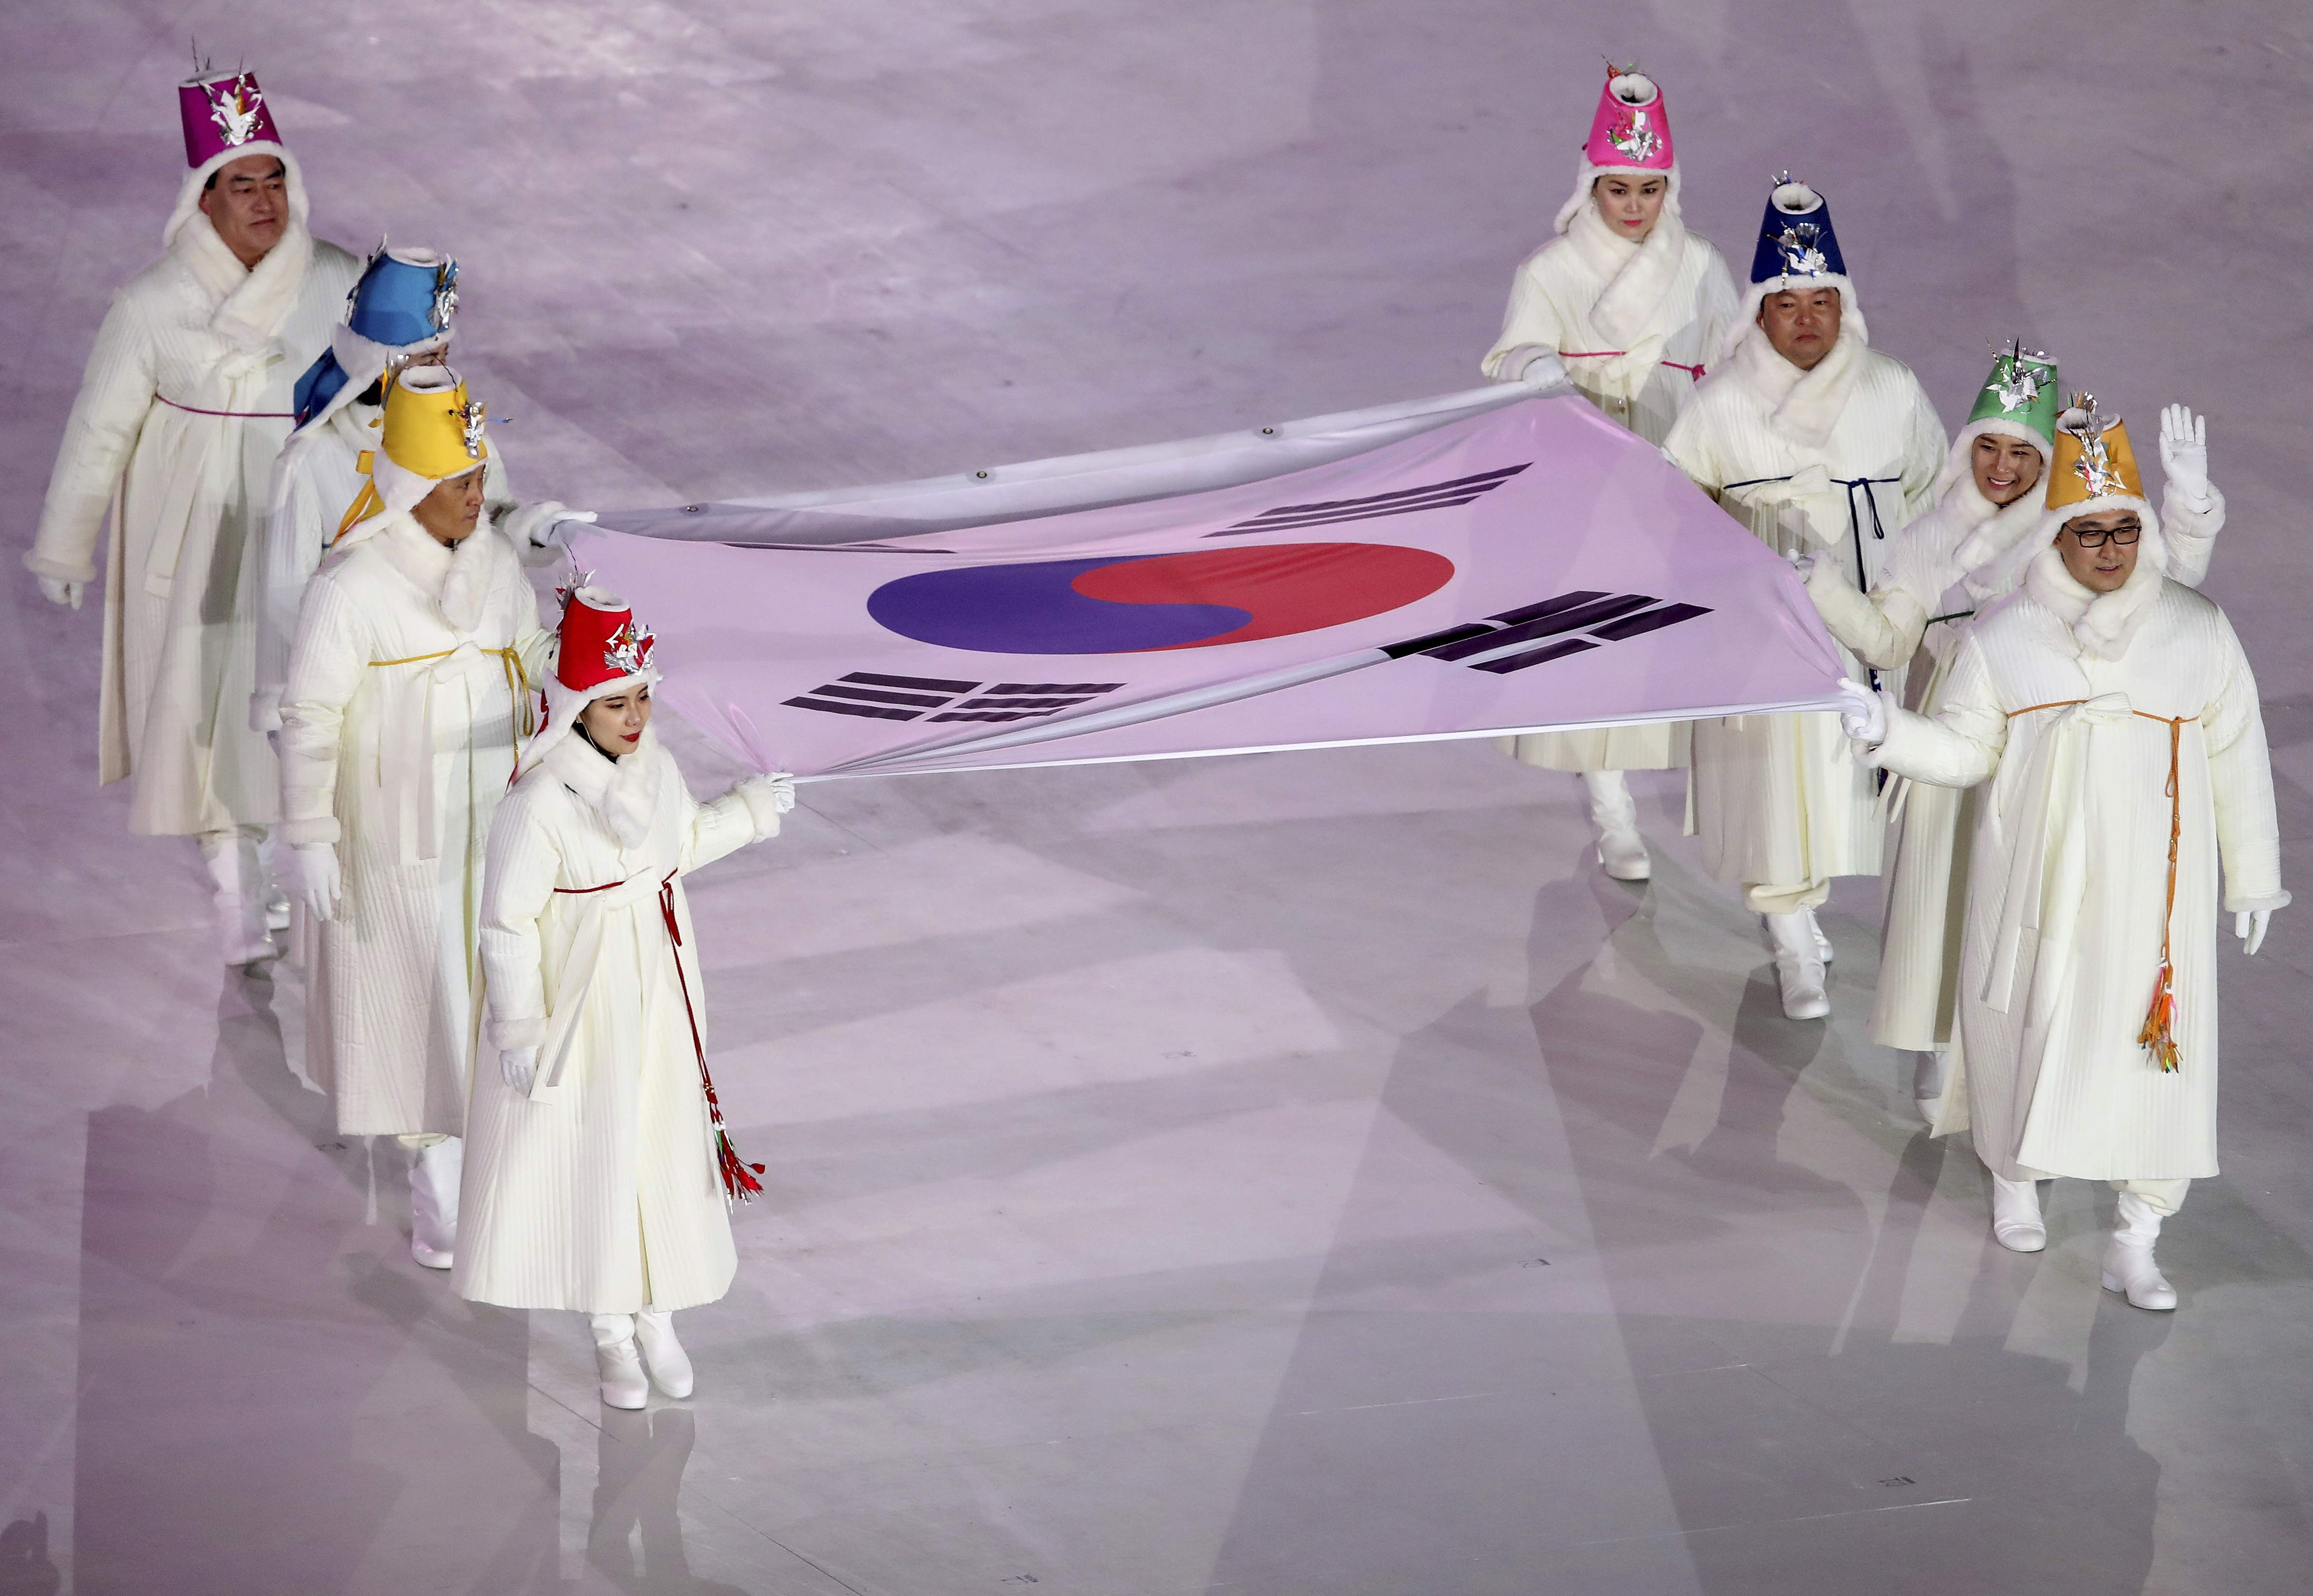 Former Olympians carry the Republic of Korea flag during the opening ceremony of the 2018 Winter Olympics in Pyeongchang, South Korea, Friday, Feb. 9, 2018. (Sean Haffey/Pool Photo via AP)